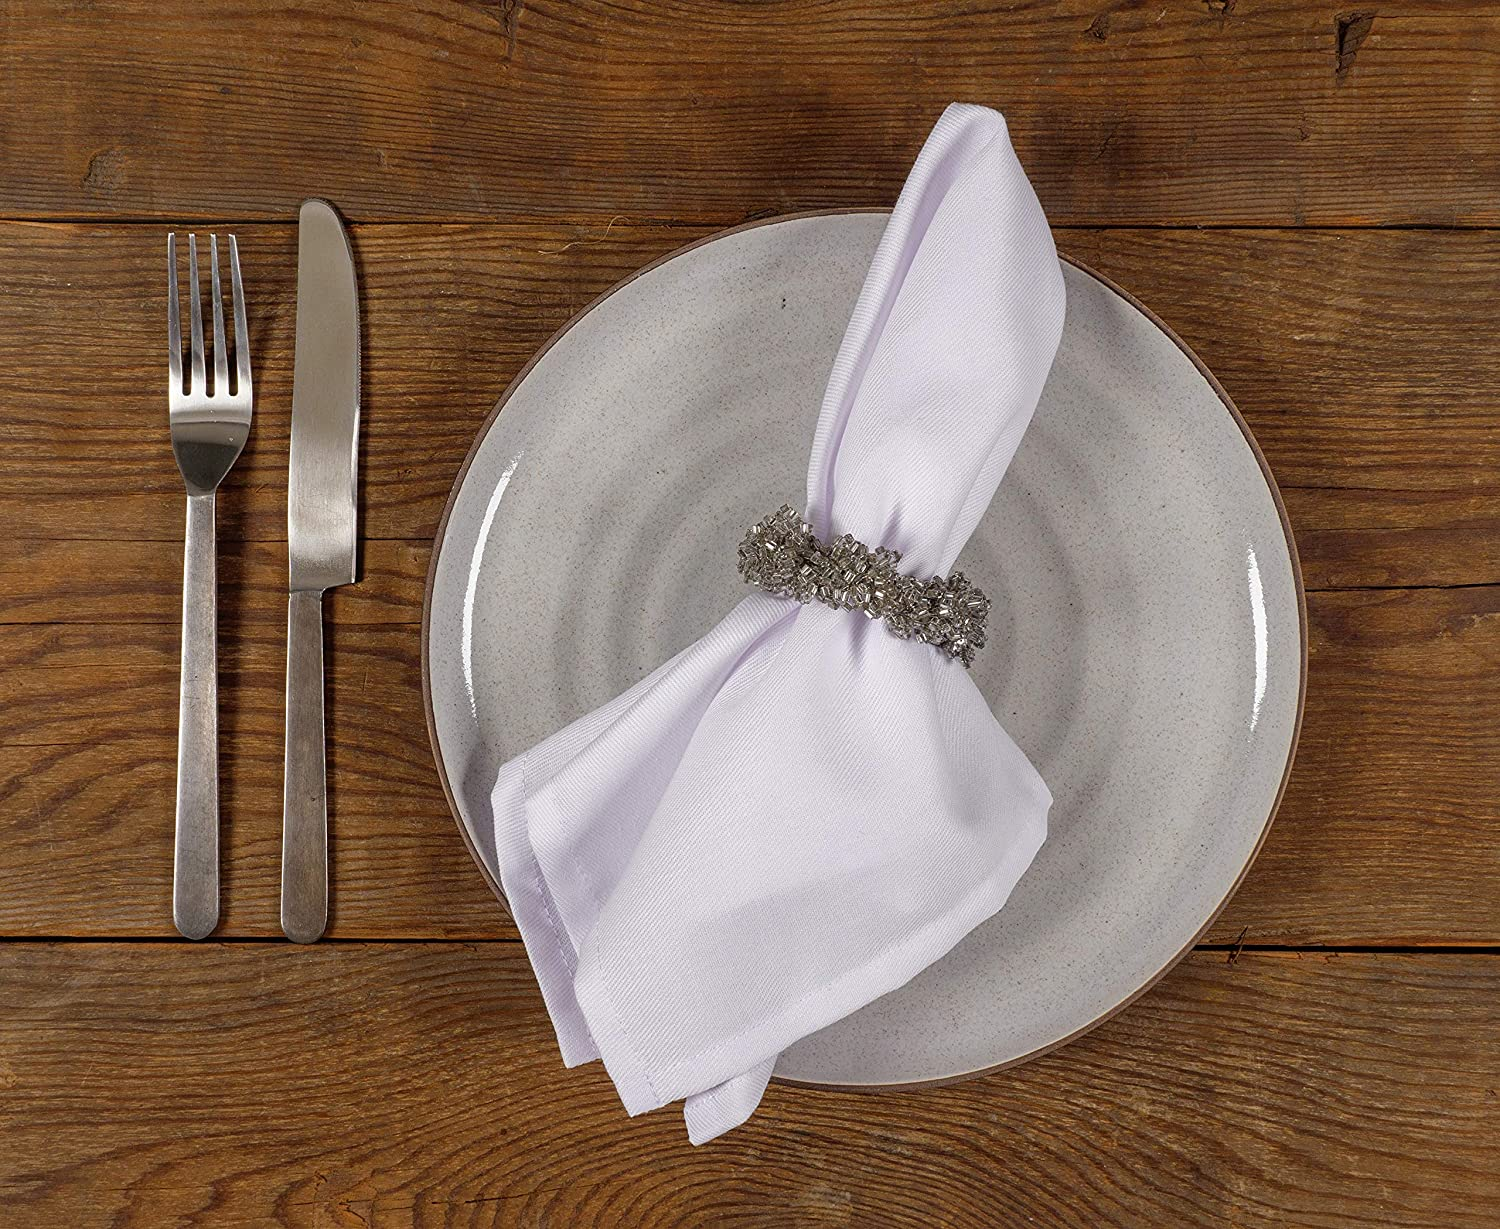 KAF Home Feast Dinner Napkins | Set of 12 Oversized, Easy-Care, Cloth Napkins (18 x 18 Inches) - Gray: Home & Kitchen